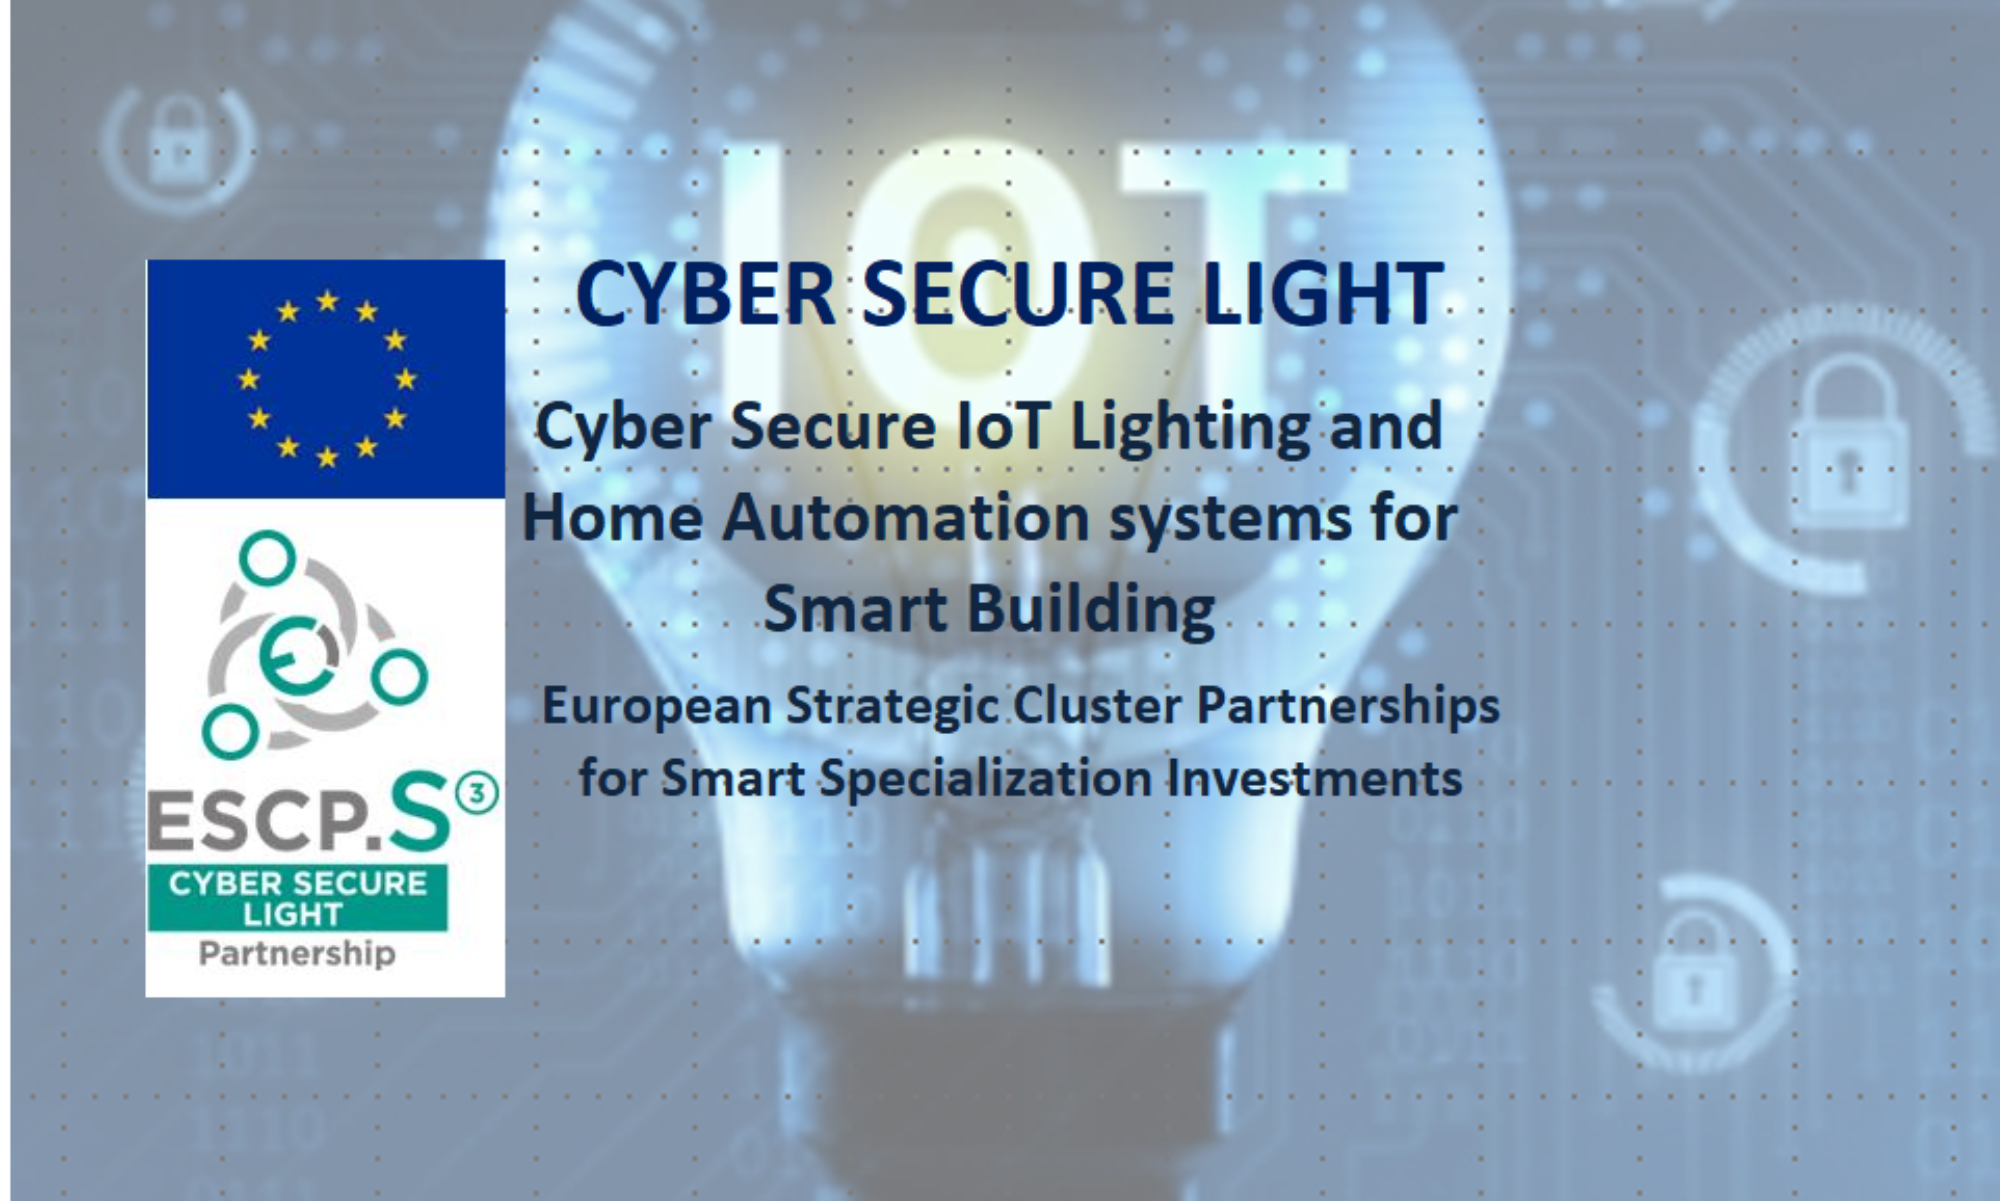 Cyber secure lighting